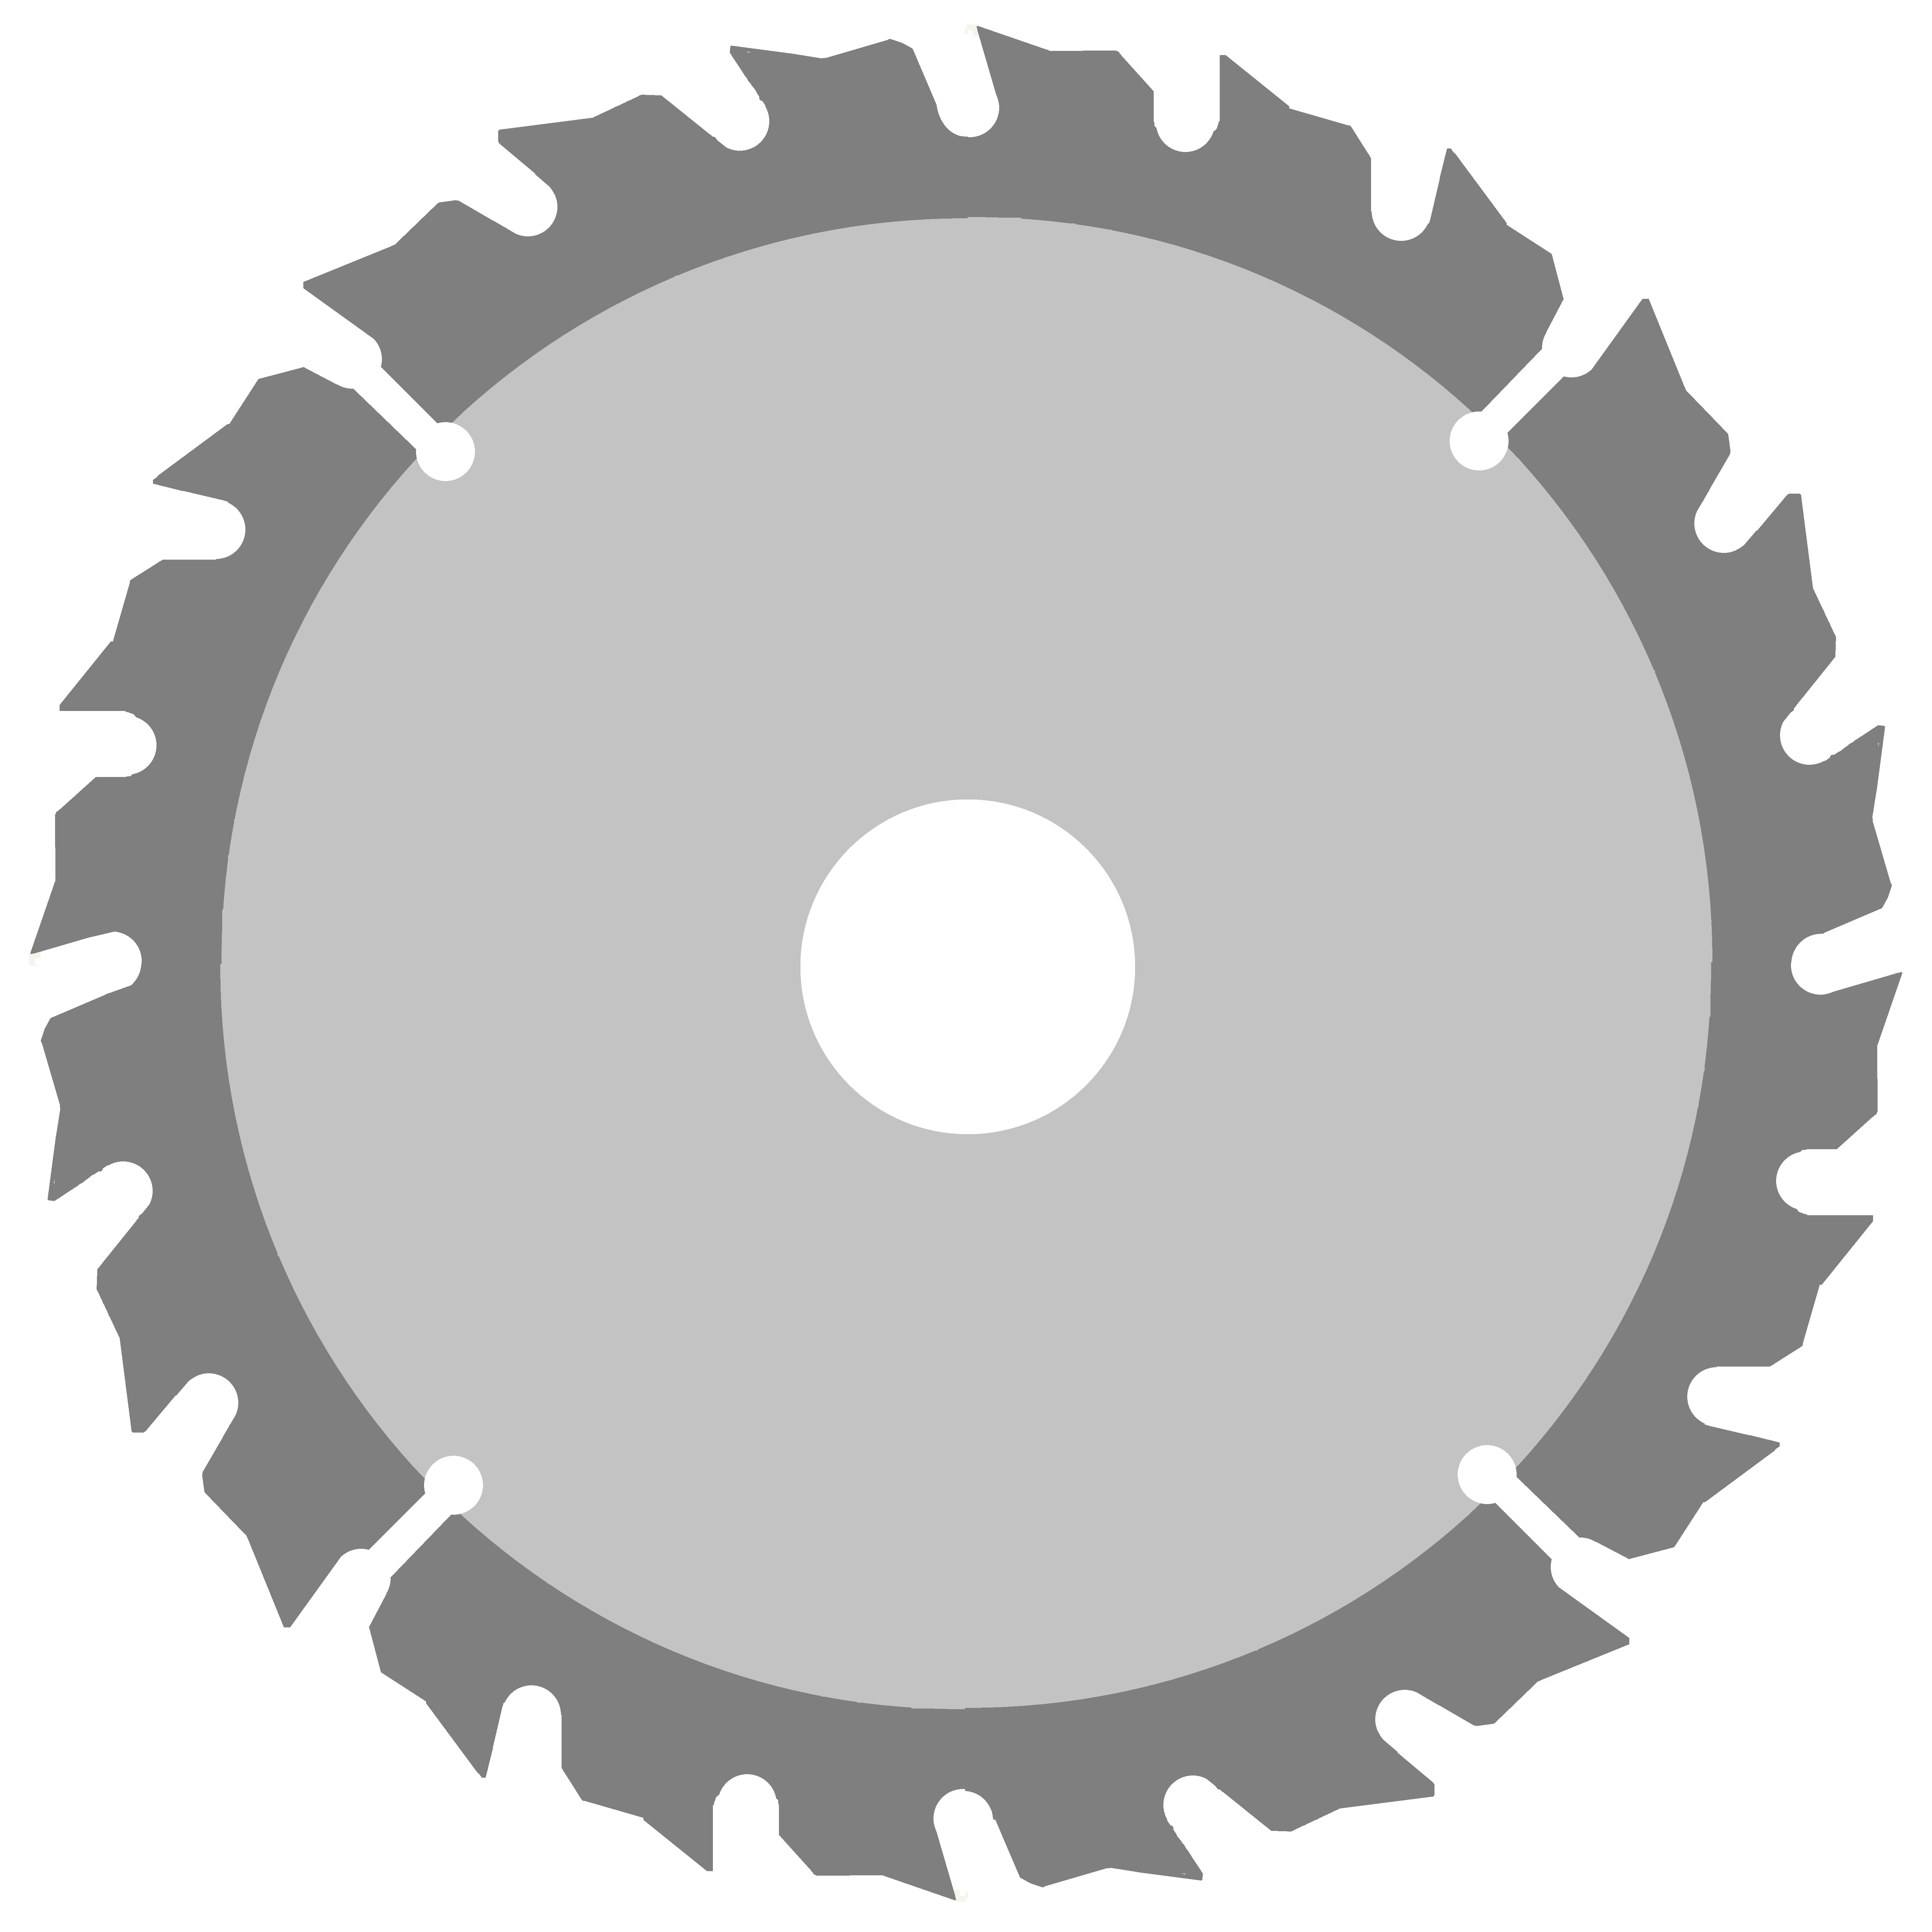 Free Saw Blade Cliparts, Download Free Clip Art, Free Clip.